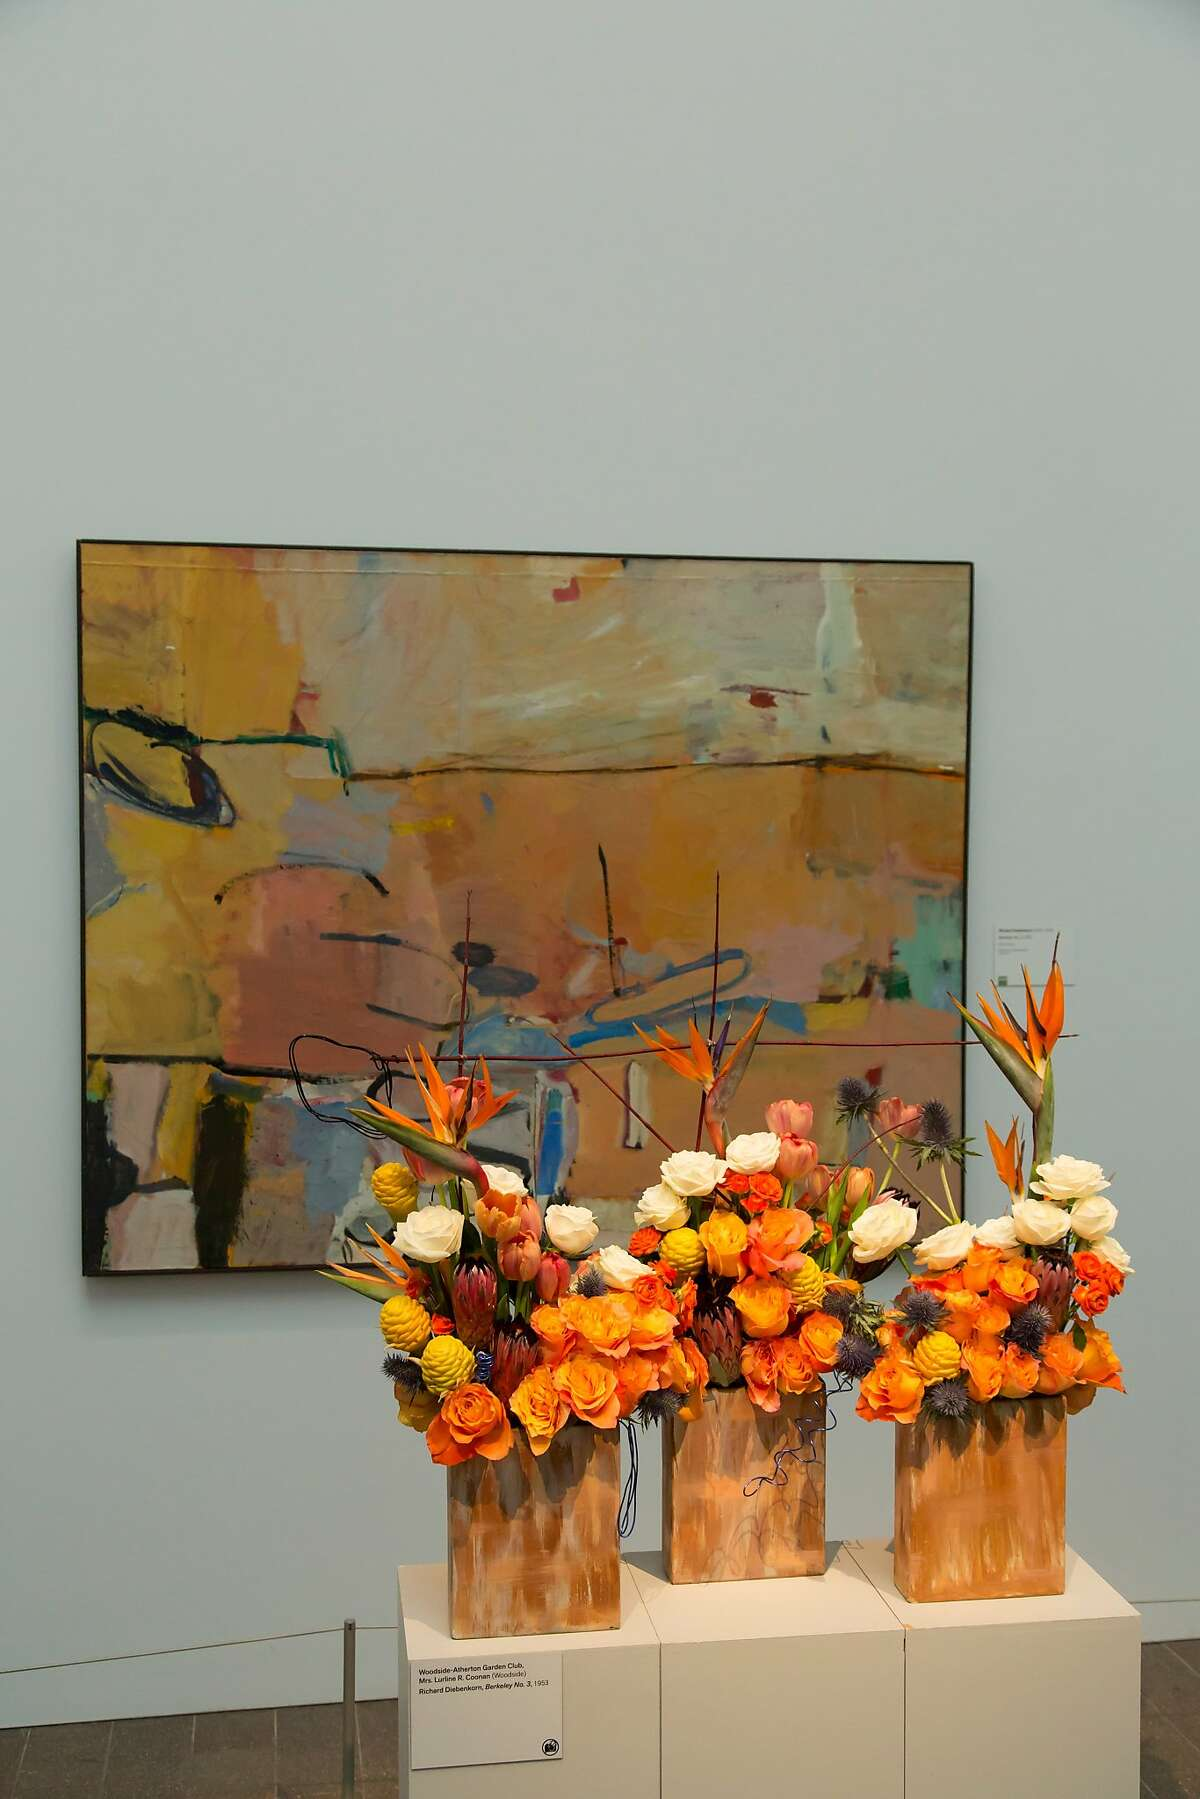 Woodside-Atherton Garden Club installation for 2013 Bouquets to Art at the de Young Museum, San Francisco. Richard Diebenkorn, Berkeley #3, 1953. Oil on canvas. Fine Arts Museums of San Francisco, bequest of Josephine Morris.